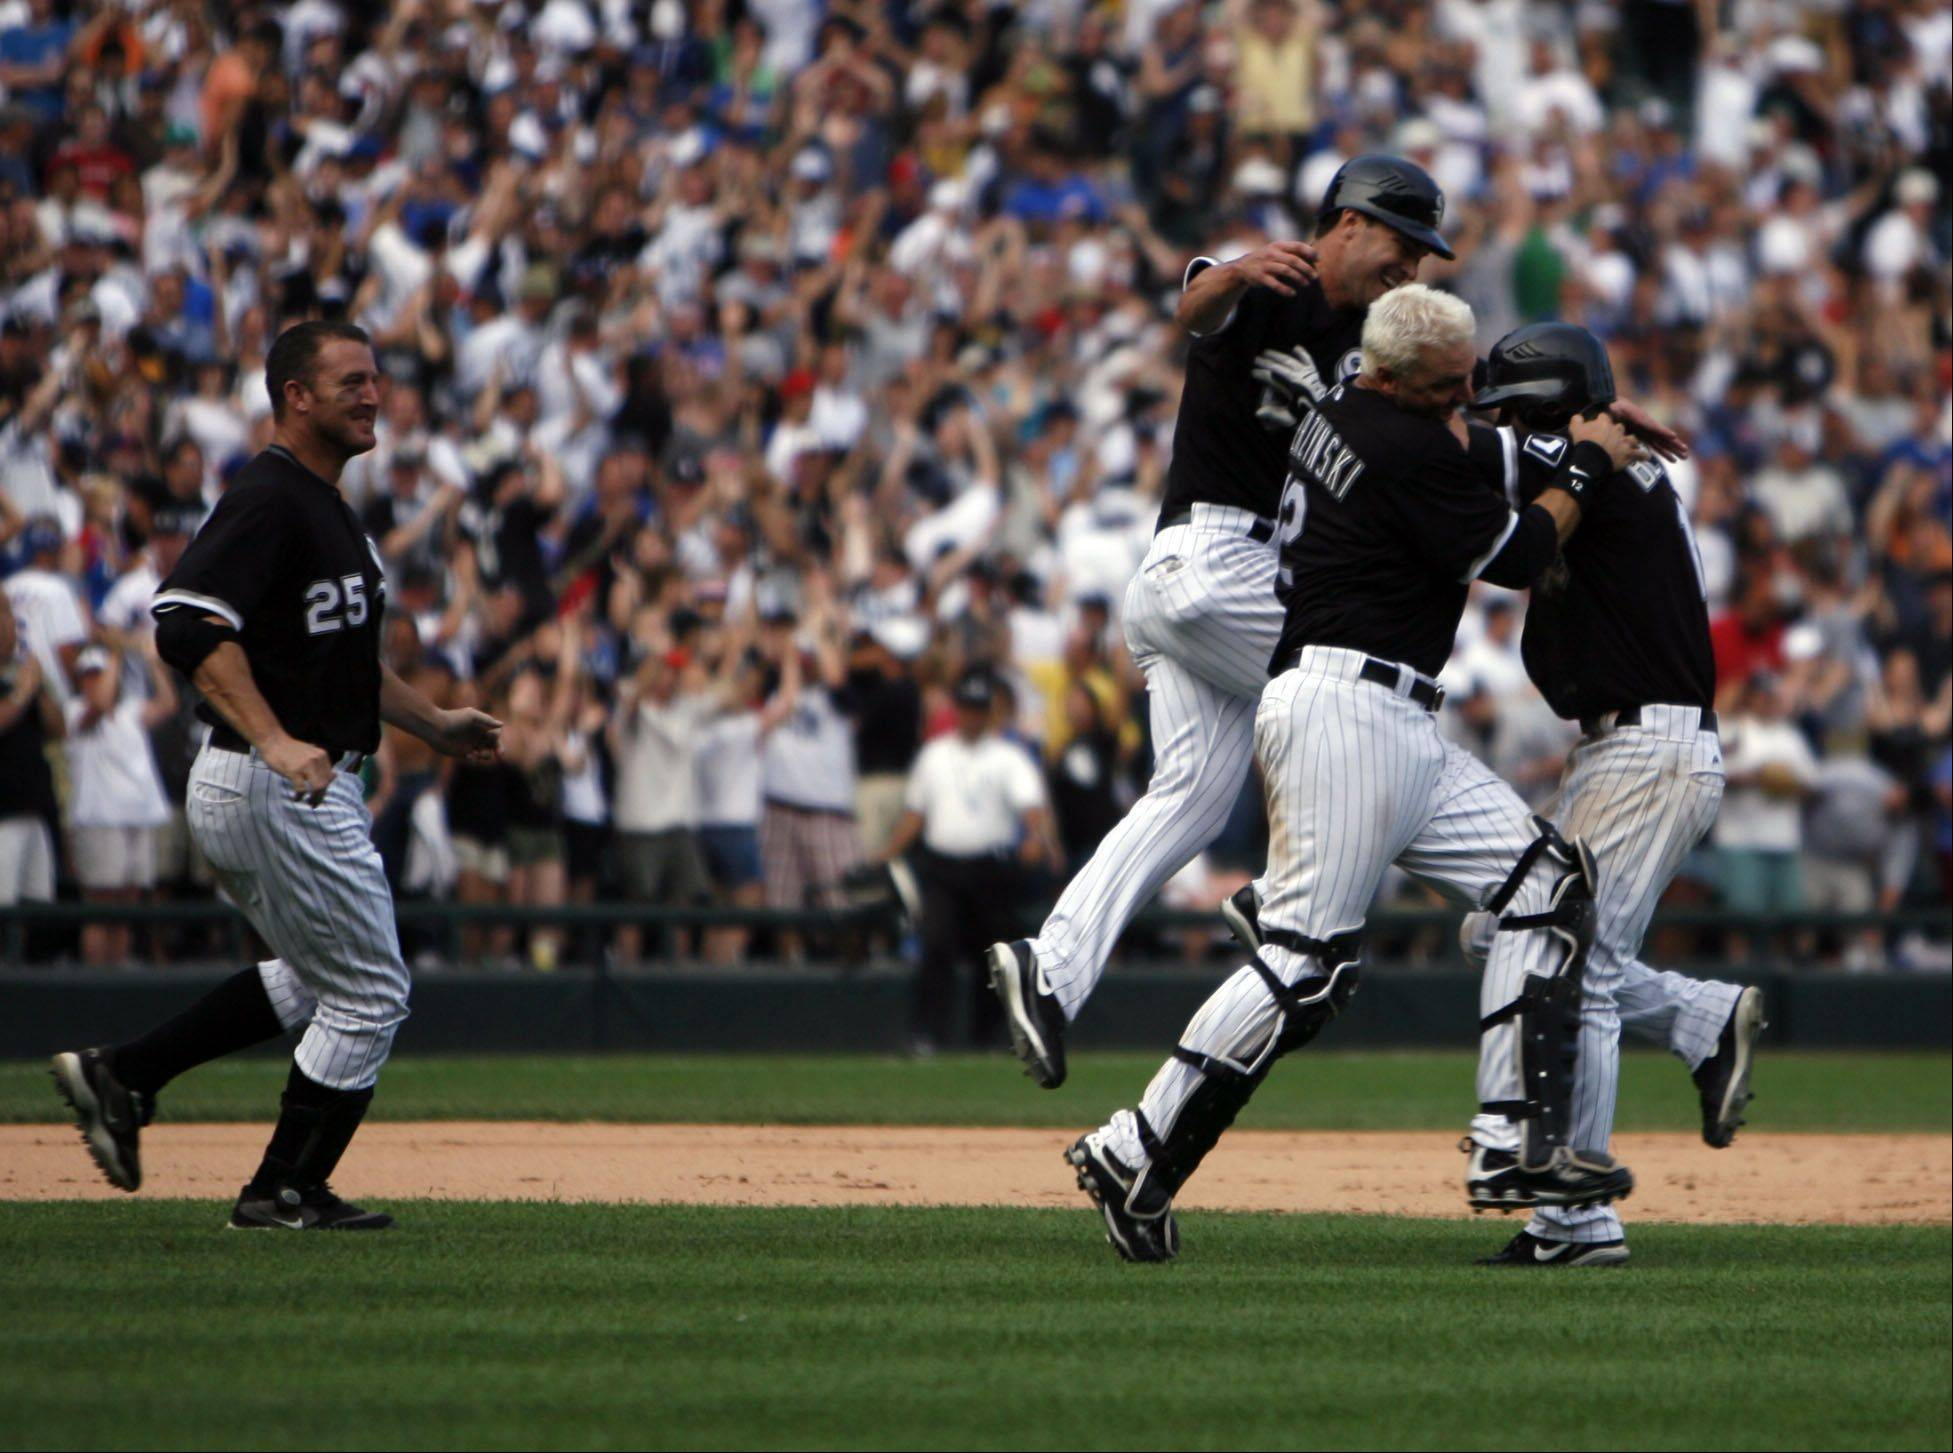 Chicago White Sox mob Gordon Beckham in the middle of field after he hit a game winning single in 8-7 win against the Cubs on Saturday June 27th.